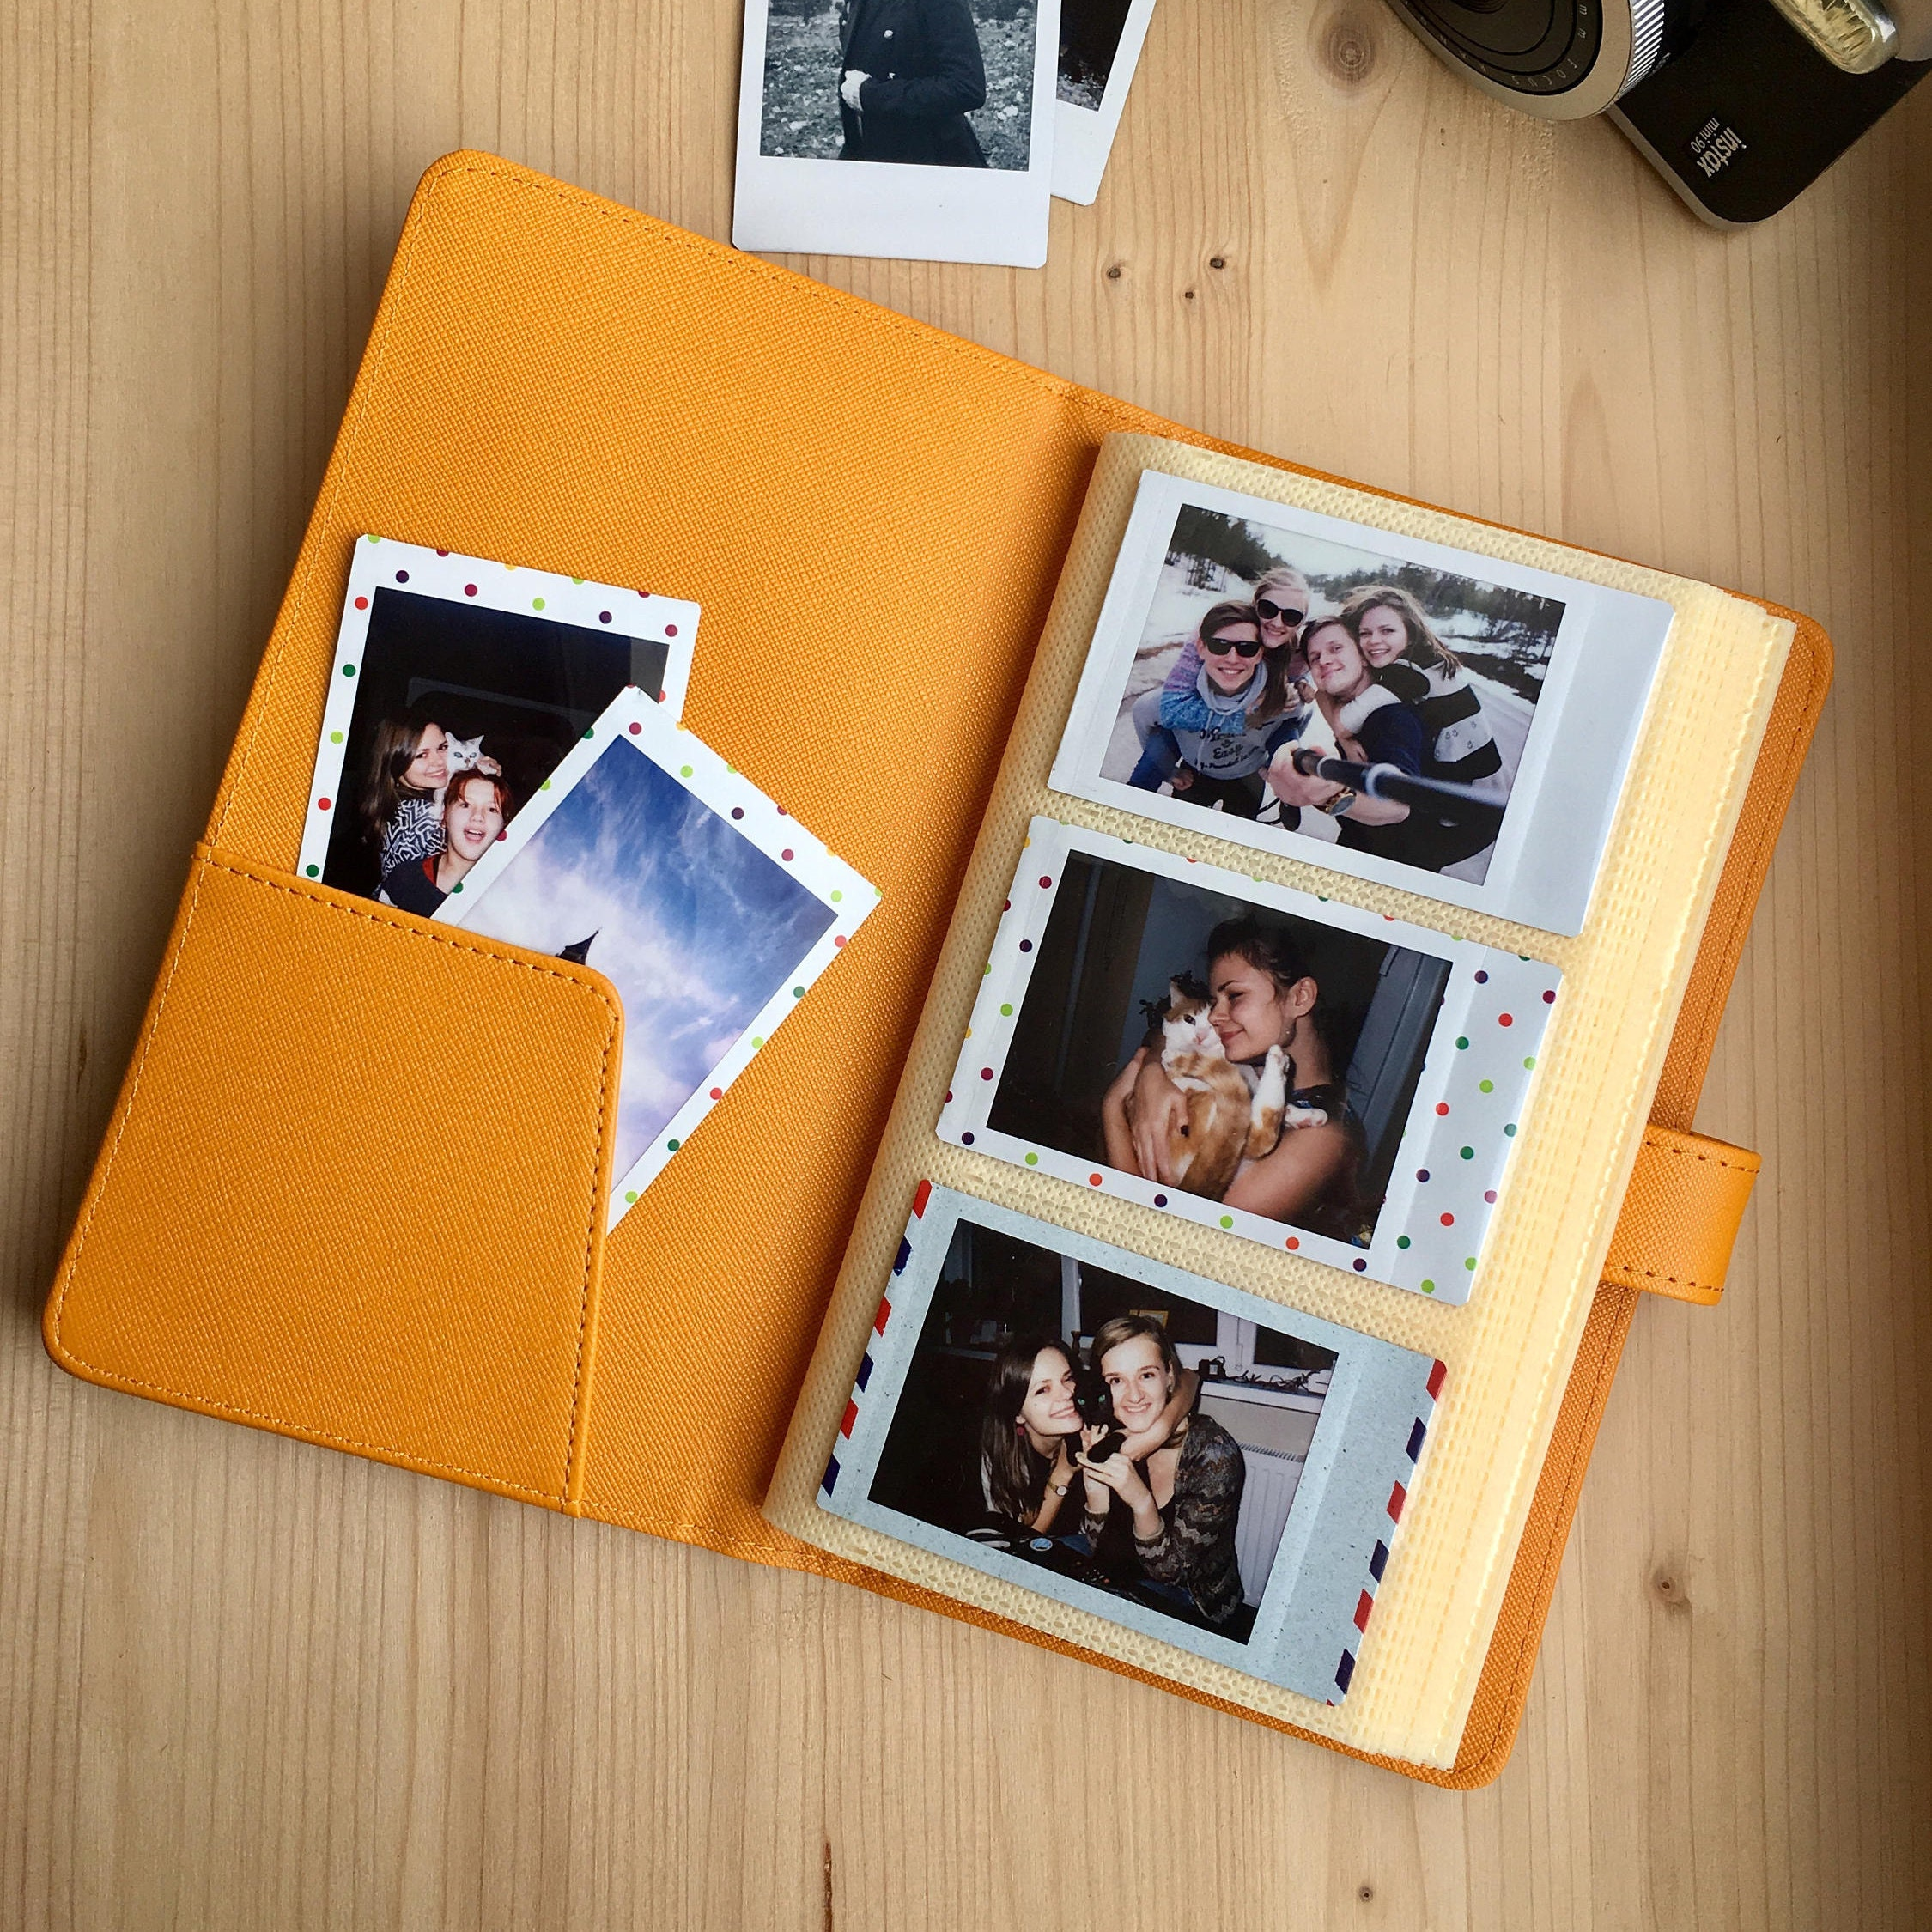 instax photo album instax mini album for 120 photos. Black Bedroom Furniture Sets. Home Design Ideas